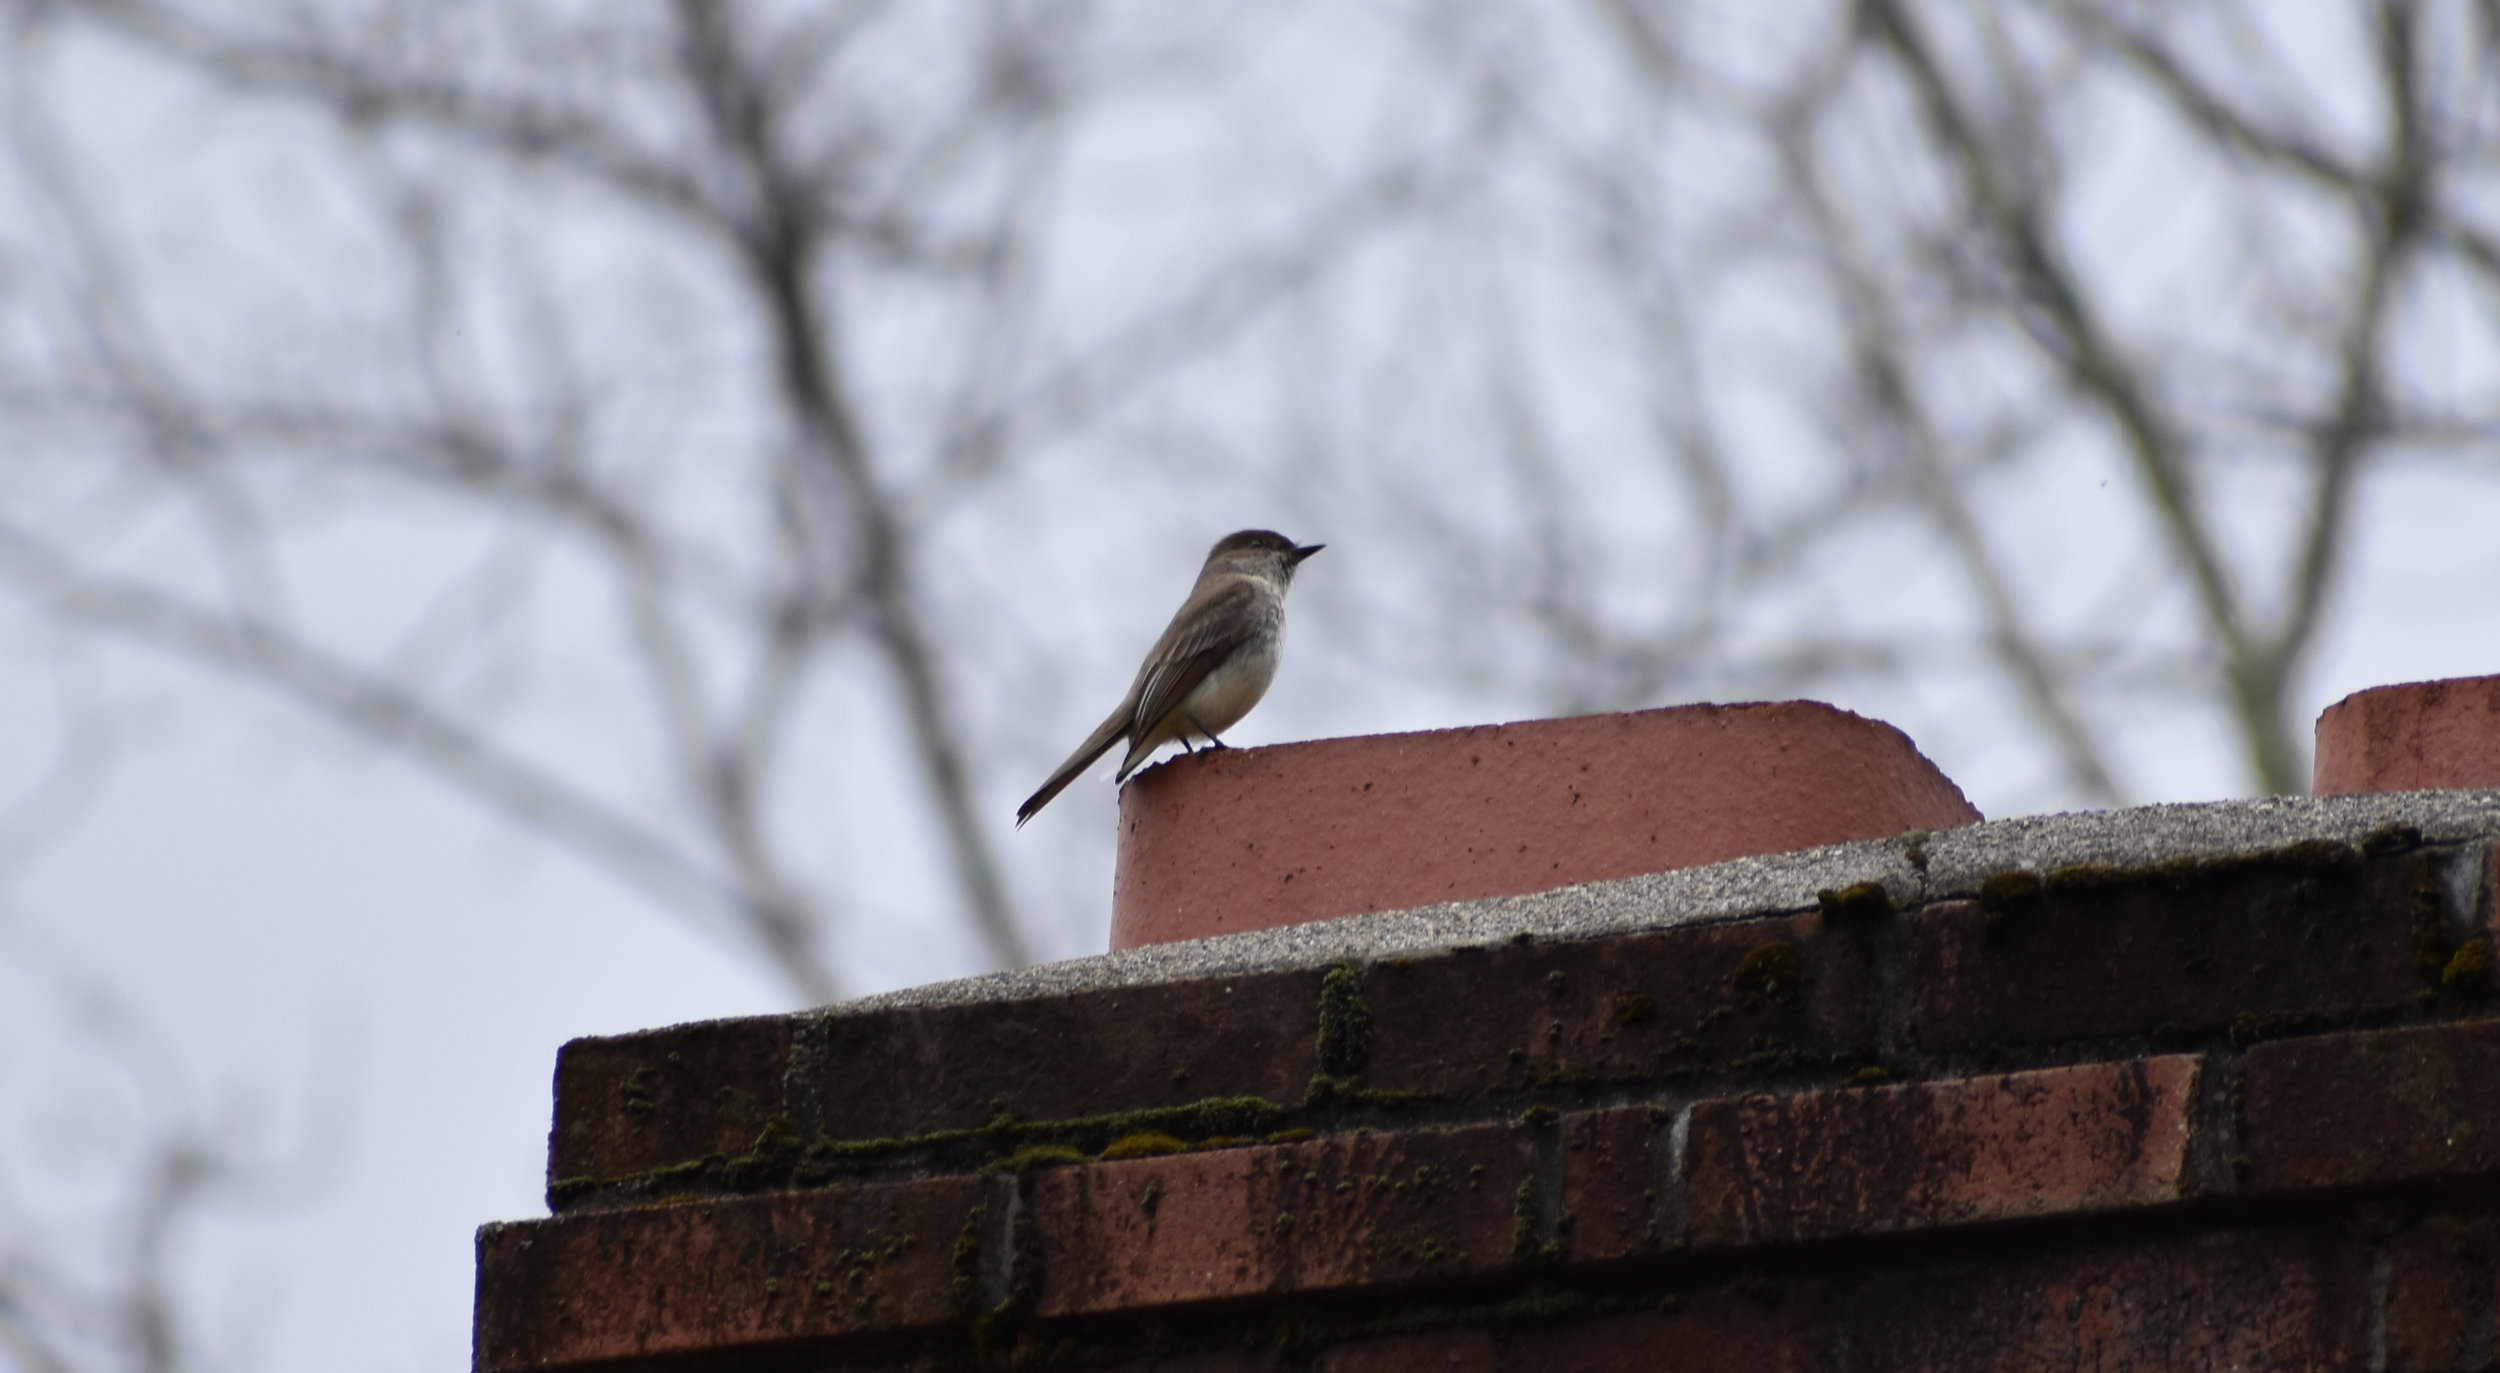 Eastern Phoebe perched on chimney